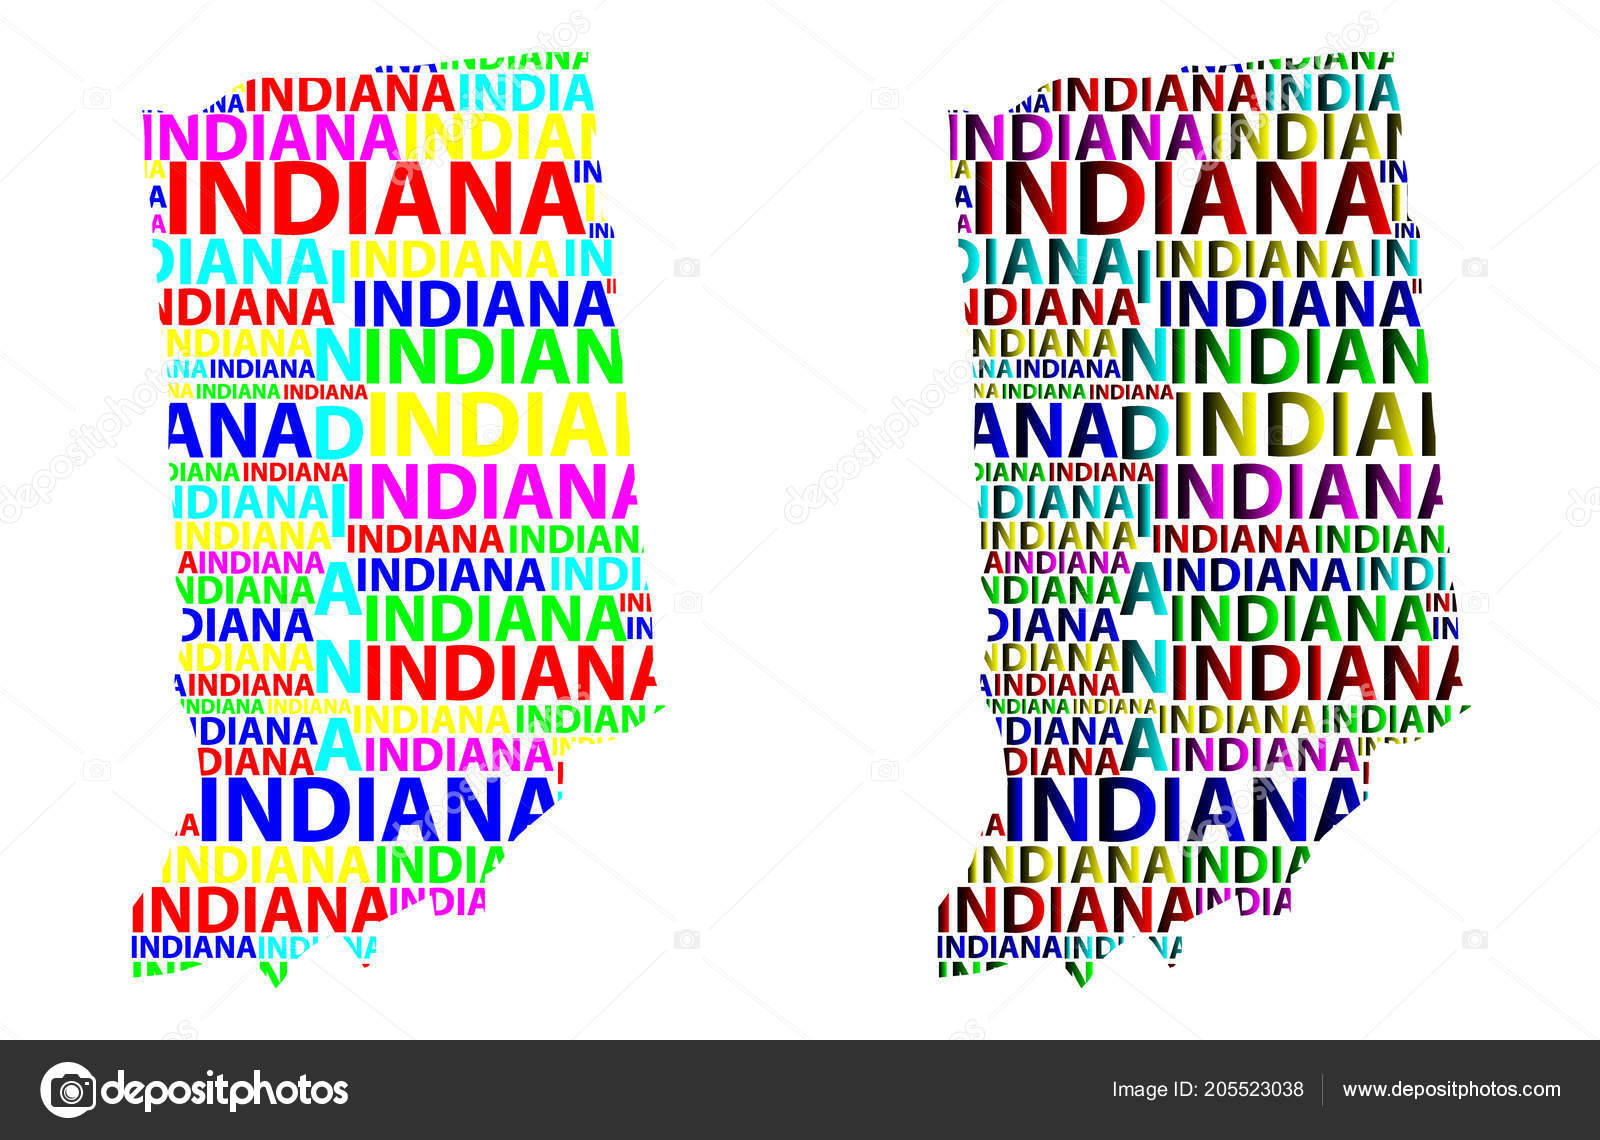 Sketch Indiana United States America Letter Text Map Indiana ...